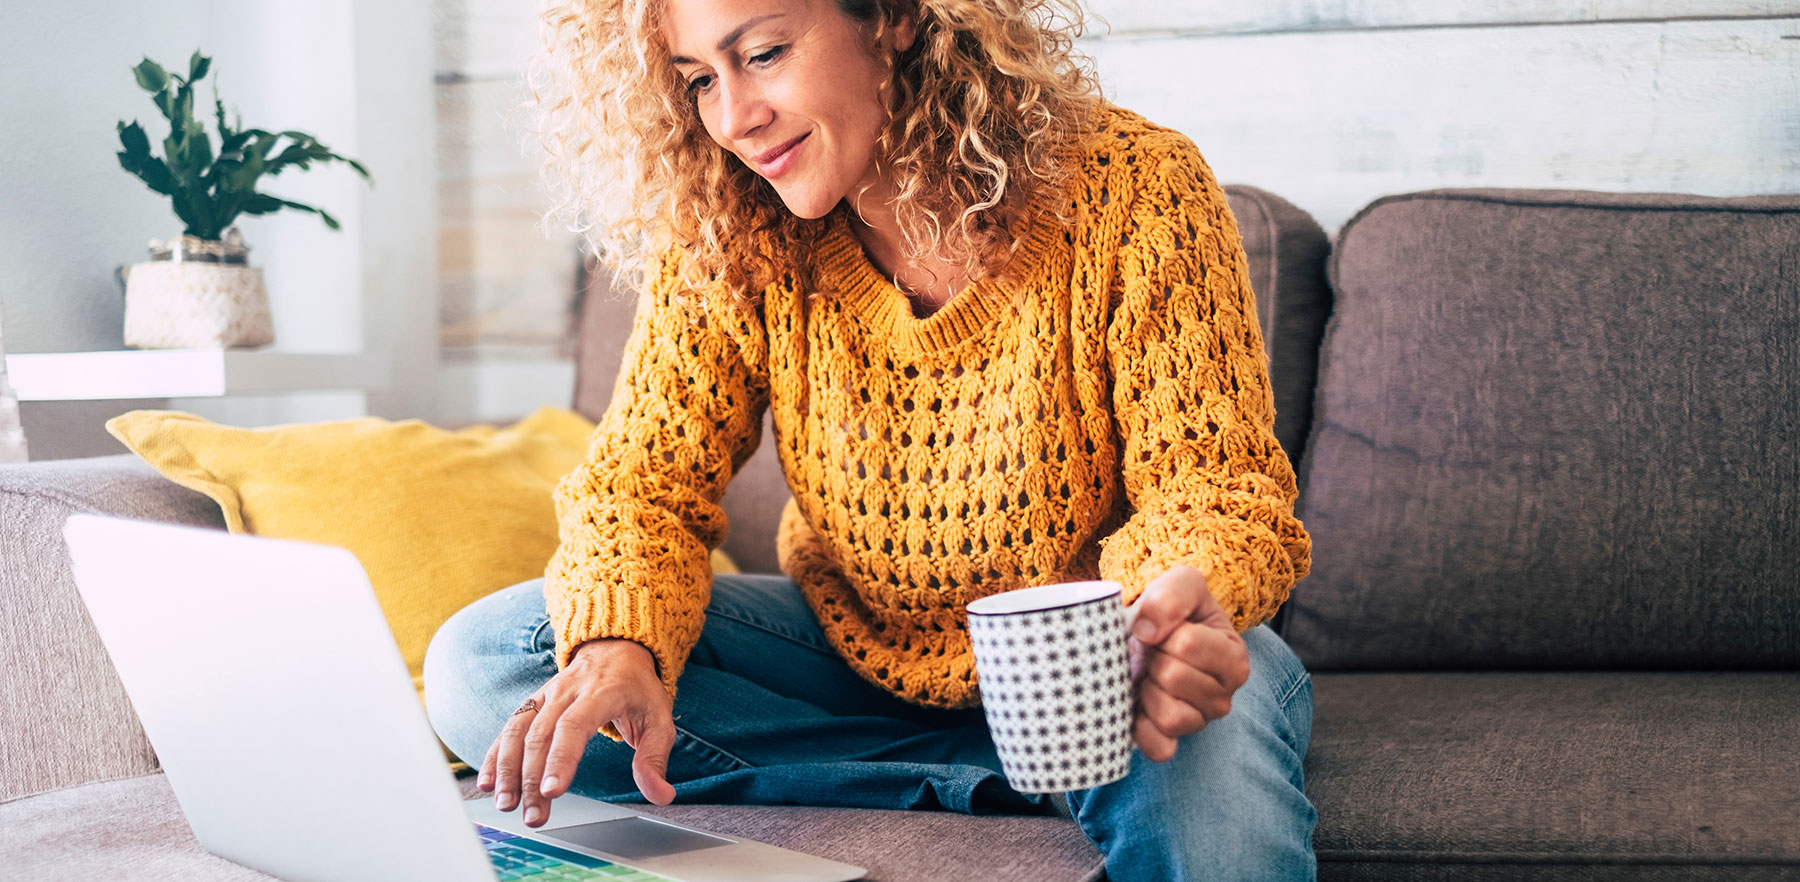 Woman sitting on a couch, holding a coffee mug, and checking her laptop